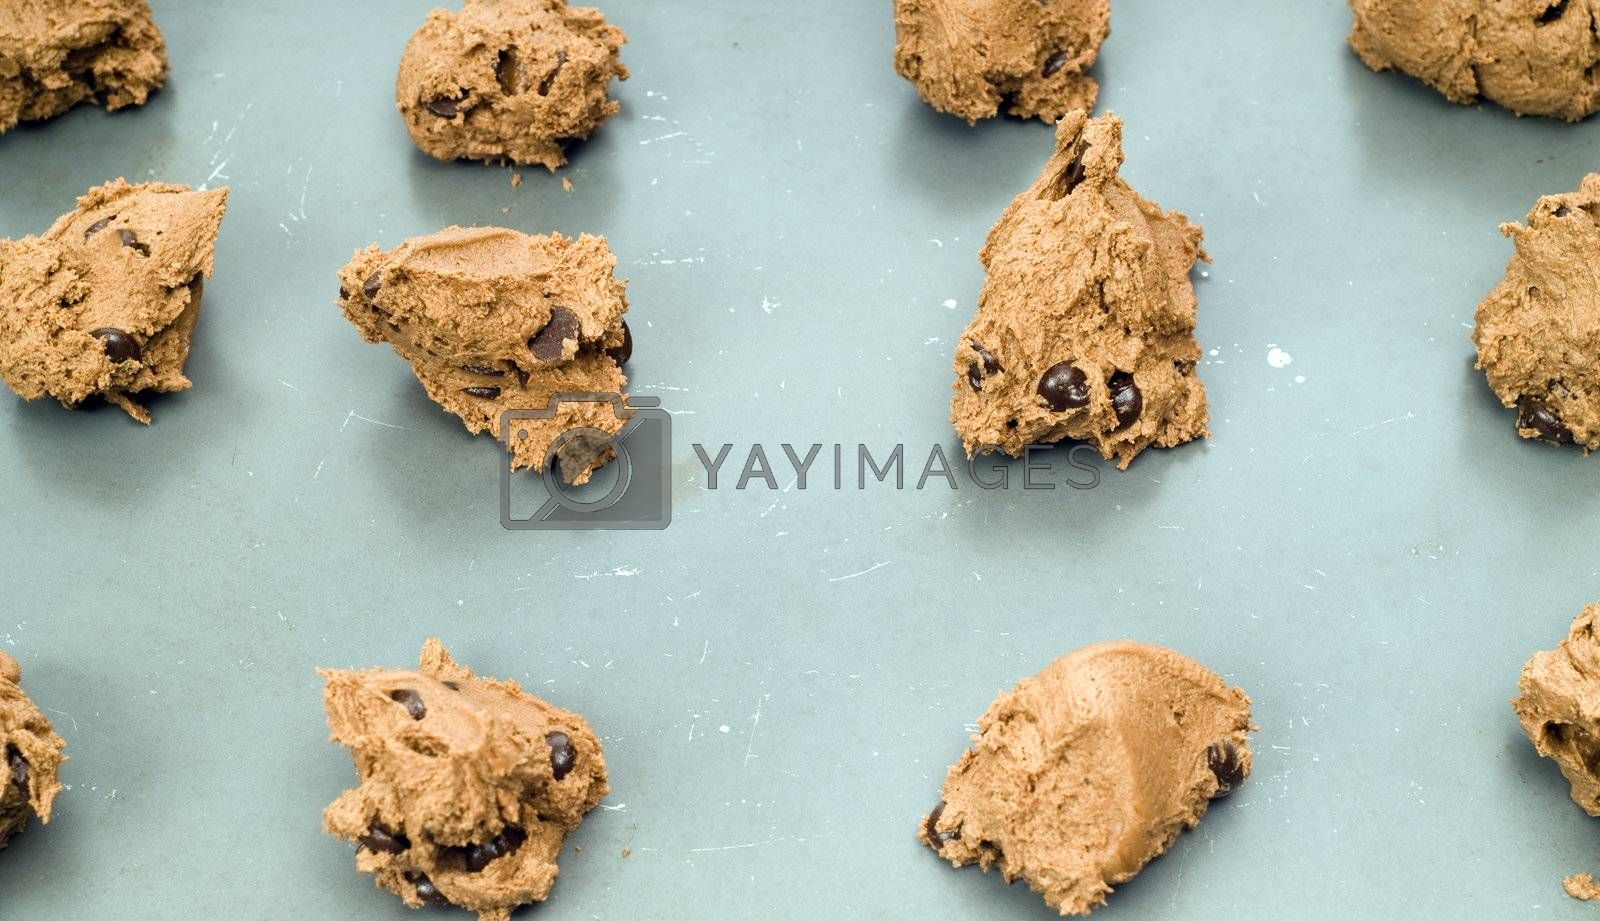 Royalty free image of Chocolate Chip Cookies by dragon_fang